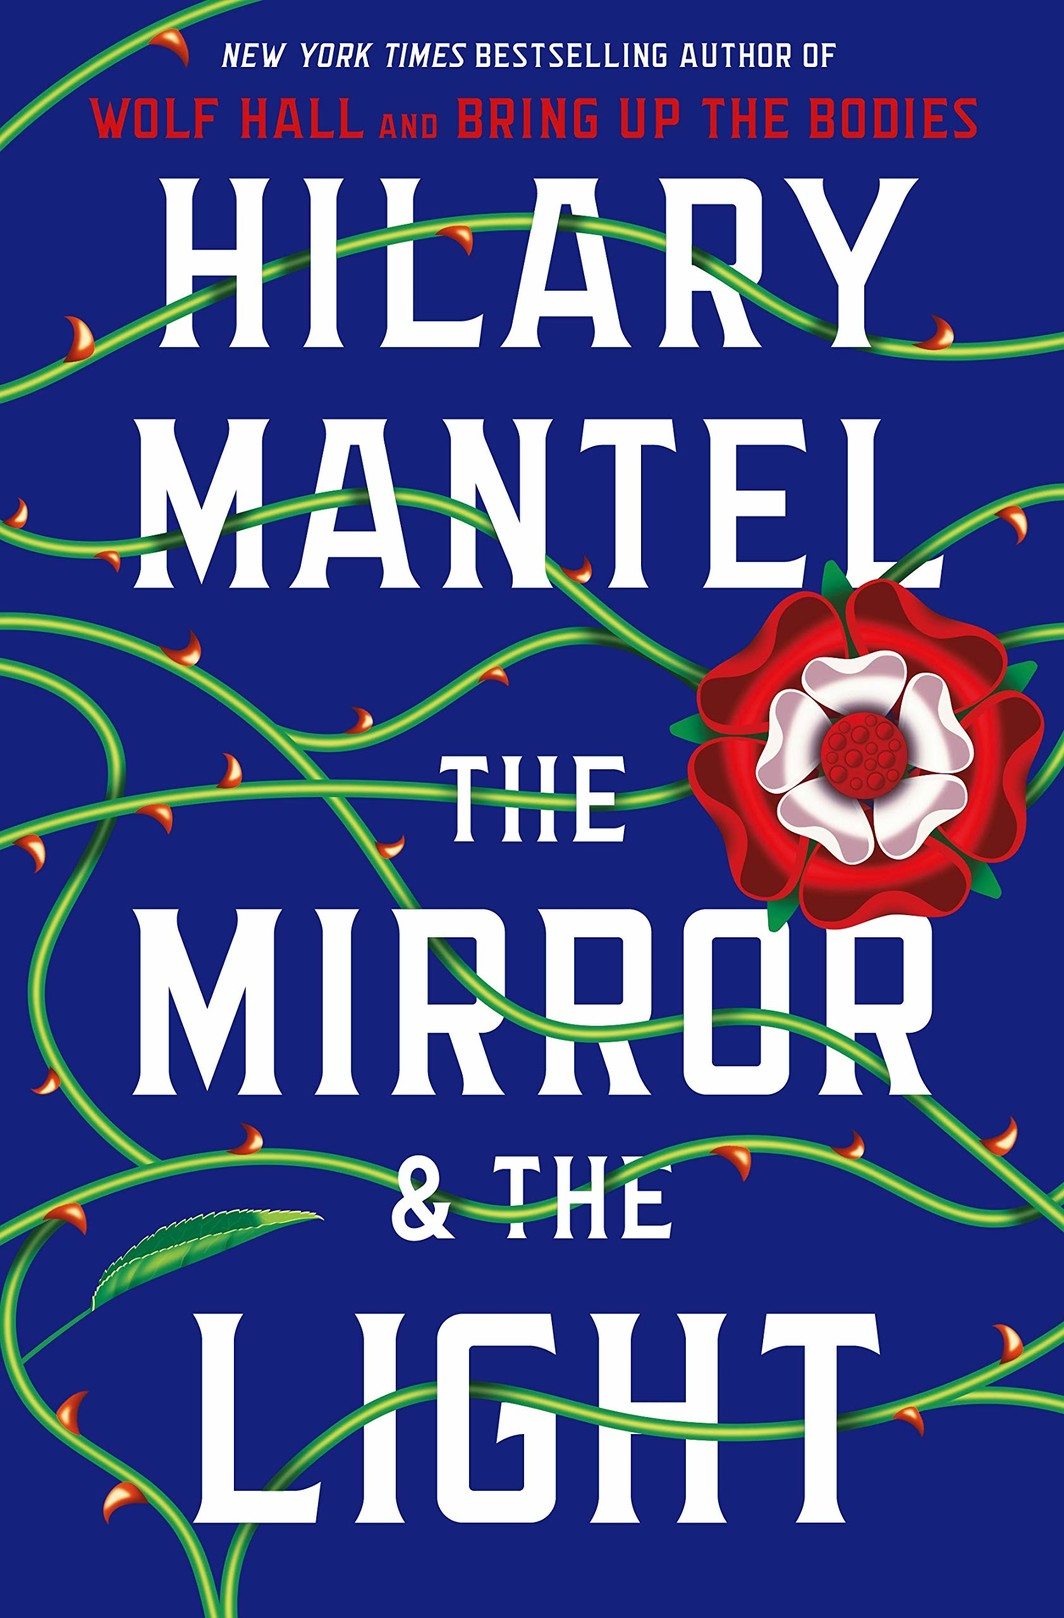 The cover of The Mirror & the Light